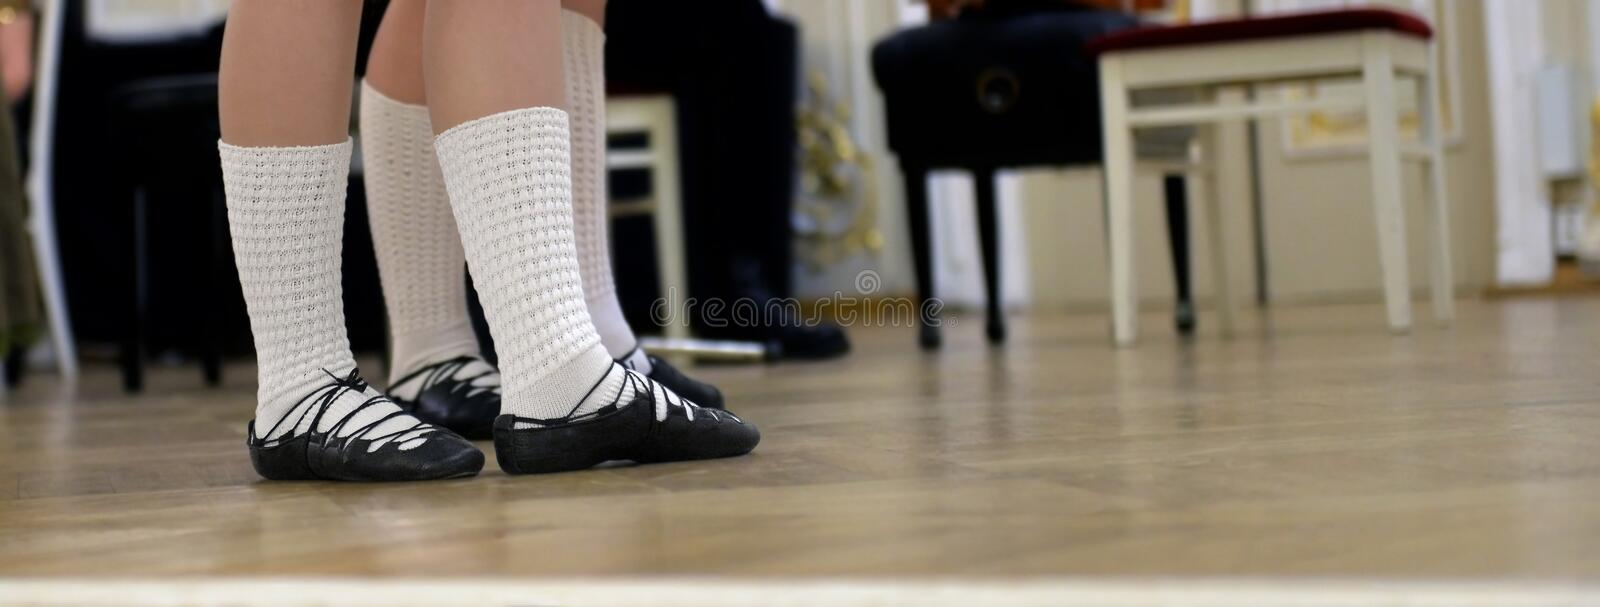 Dancers feet shod in shoes for Celtic dance. Dancers feet shod in soft shoes for Celtic dancing on stage royalty free stock images